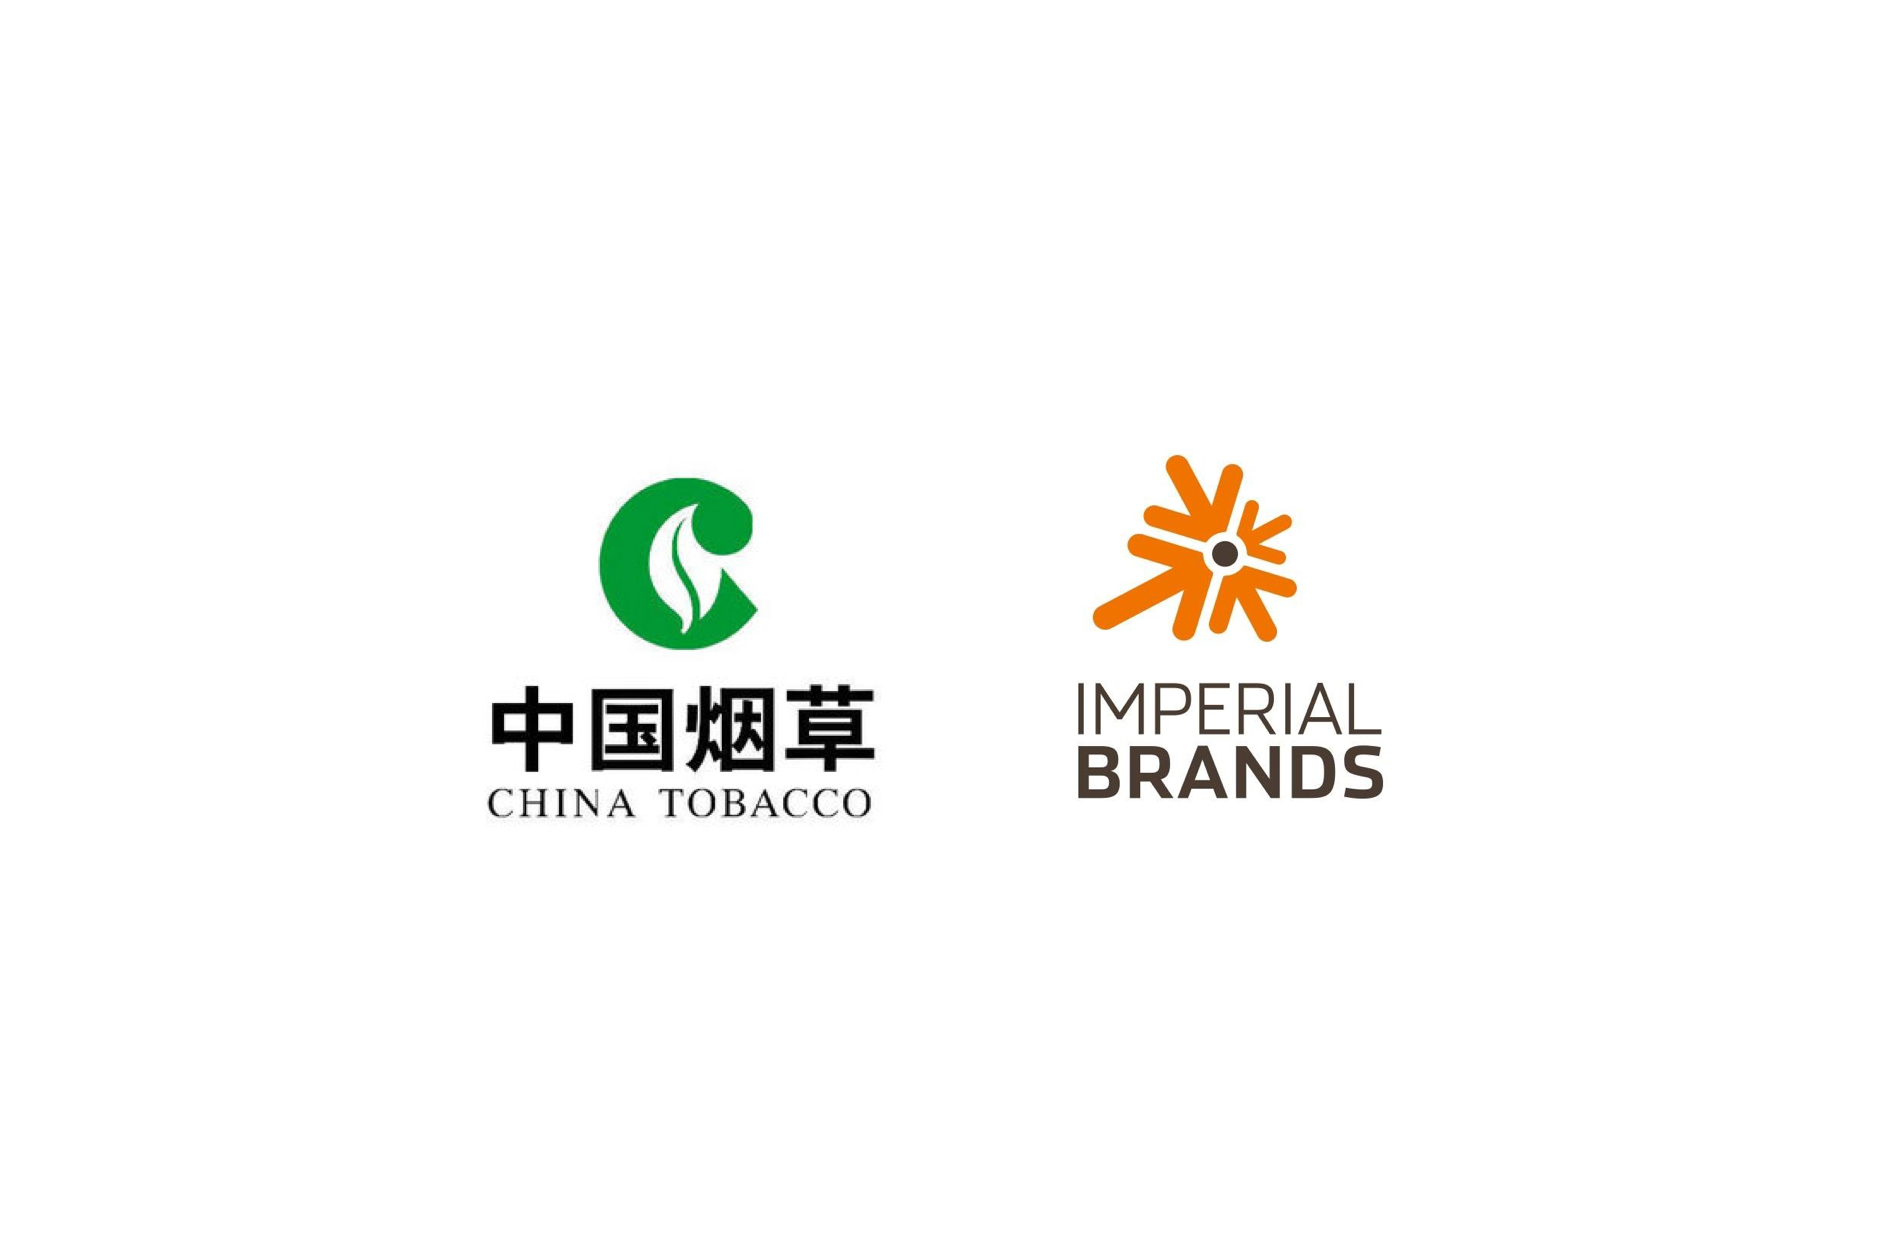 Imperial Brands and China Tobacco Form New Join Venture